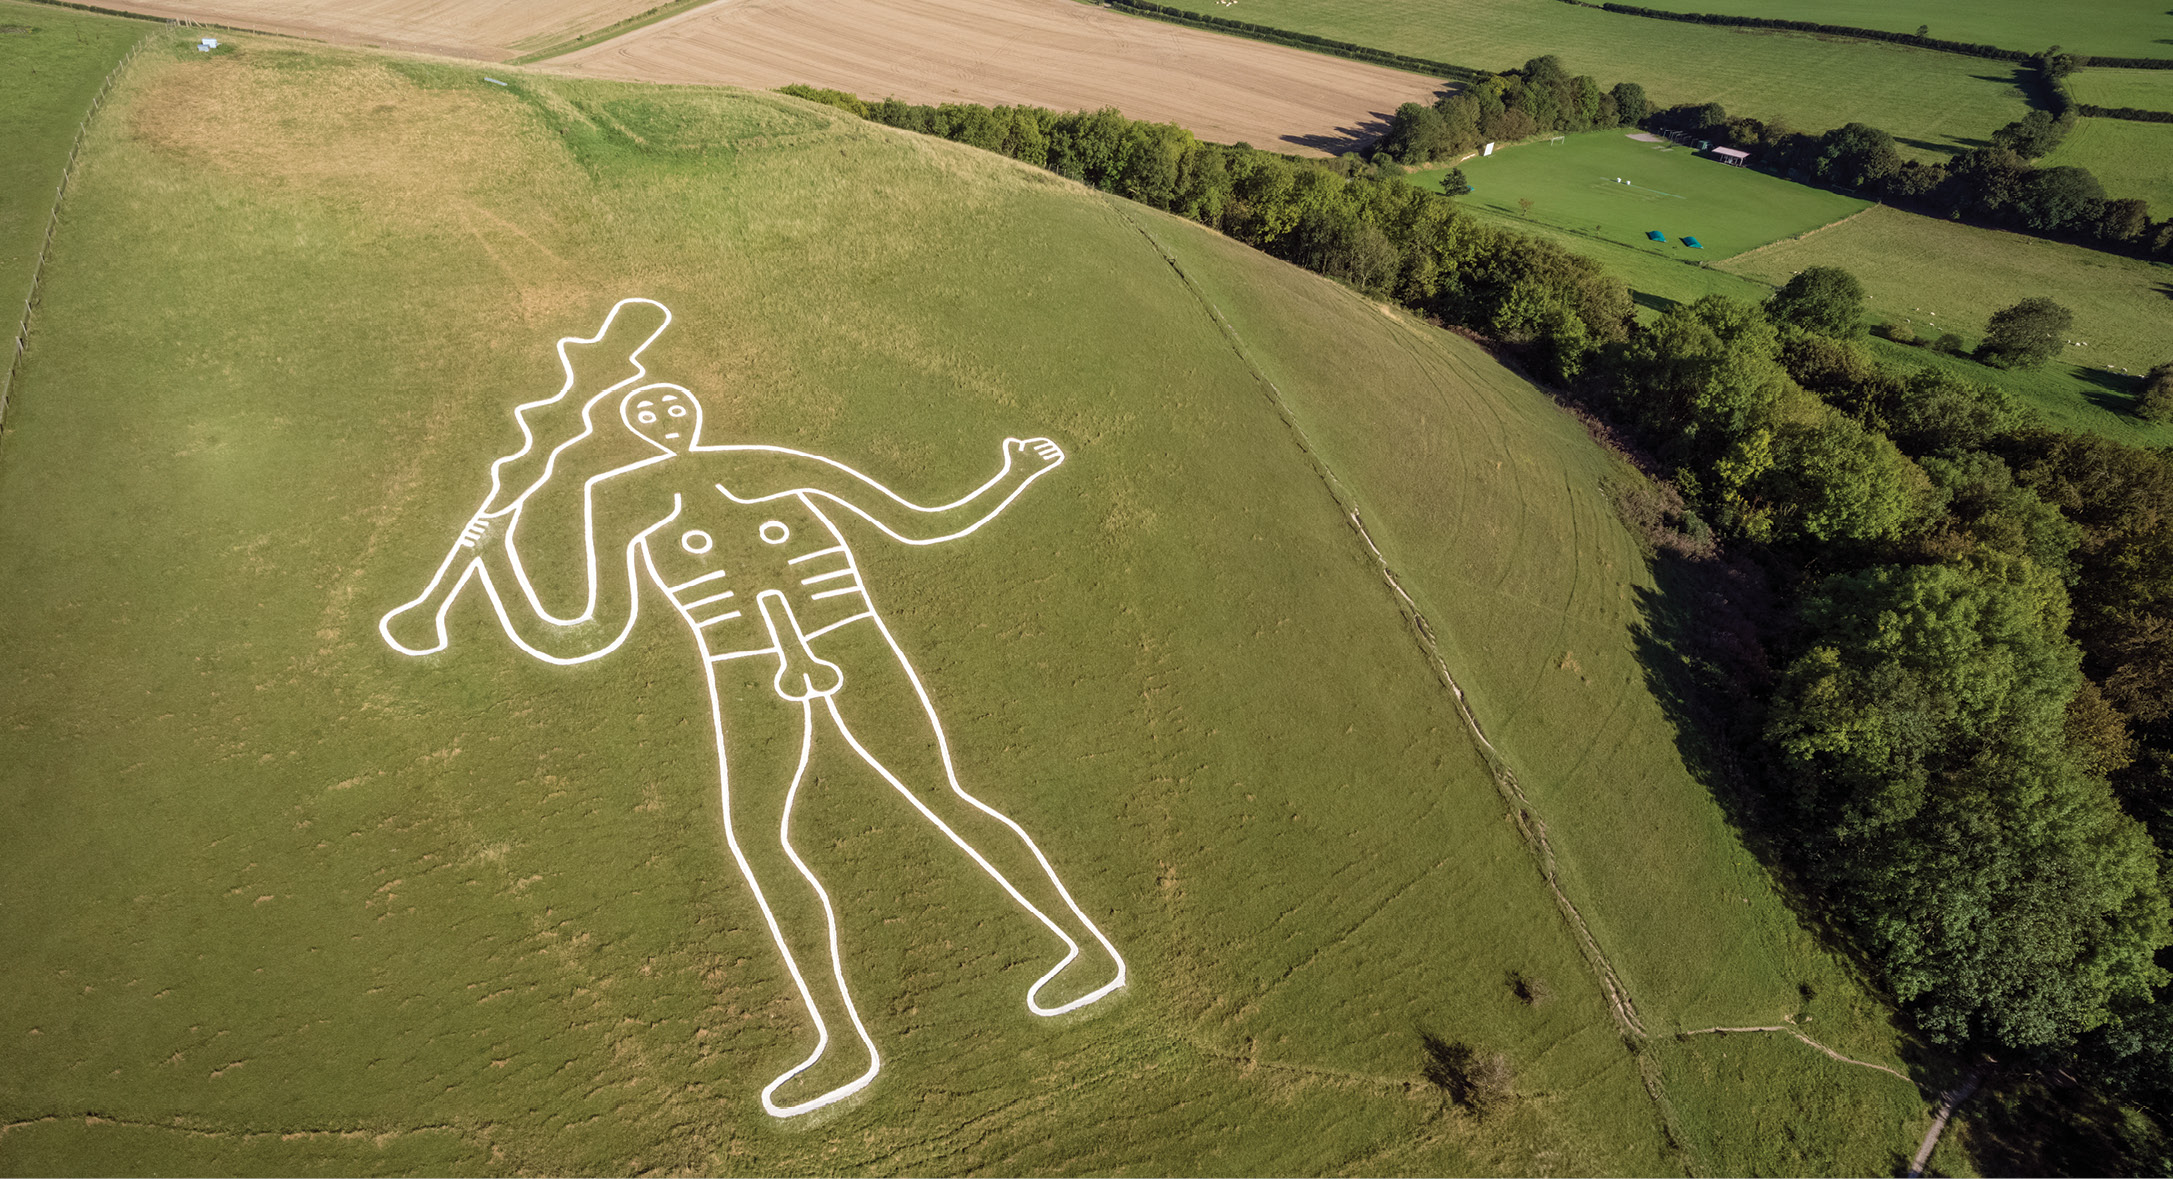 Latest dating evidence for the Cerne Abbas hill figure